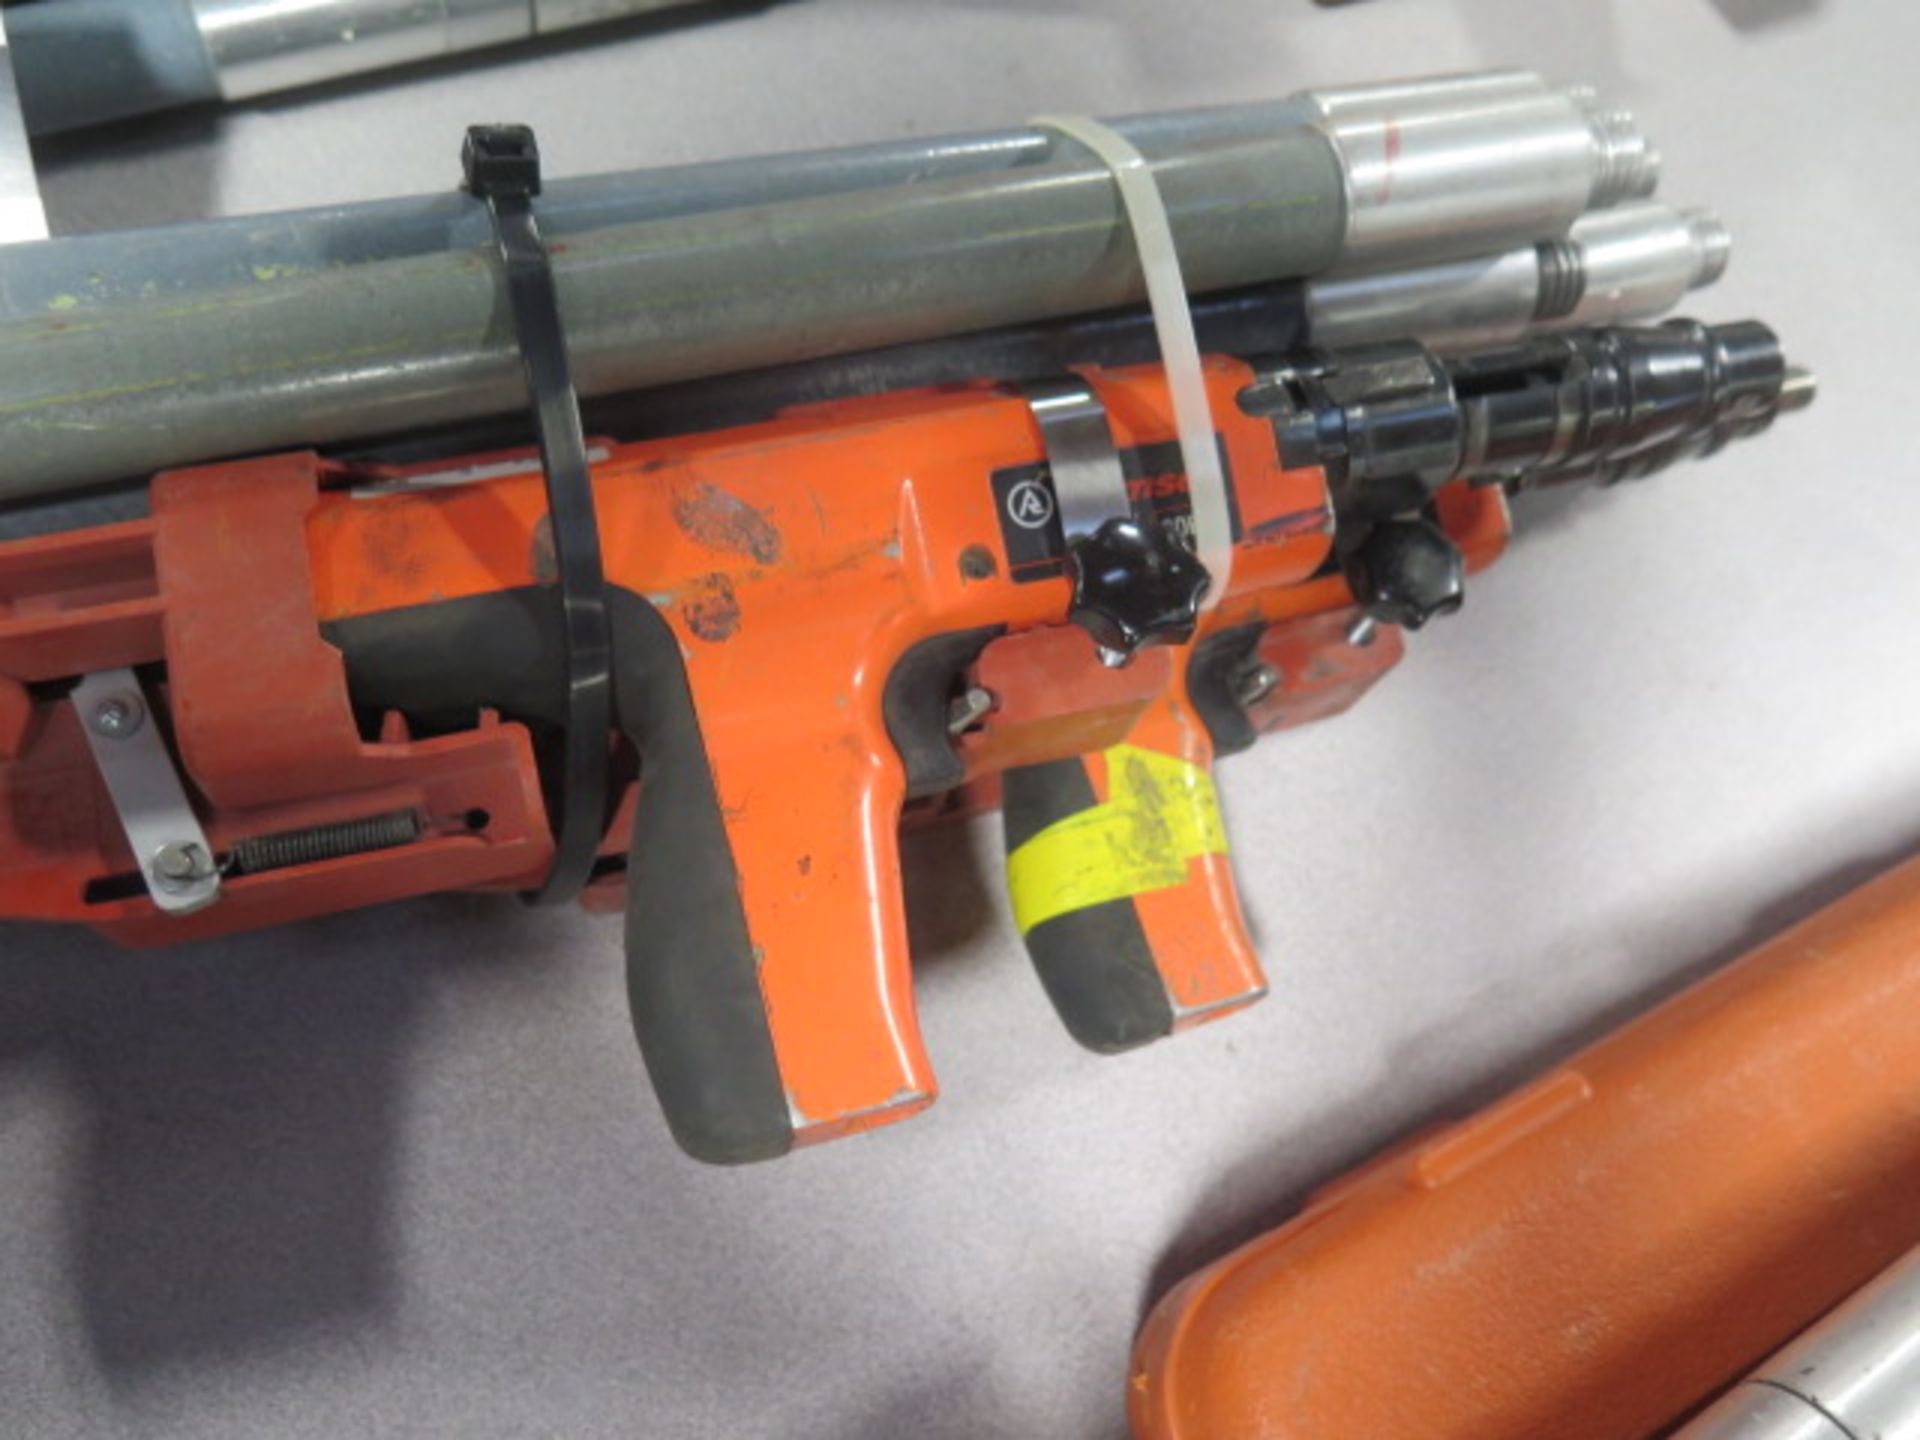 Ramset Cobra Powder Actuated Guns (2) w/ Extension Sets (SOLD AS-IS - NO WARRANTY) - Image 2 of 2